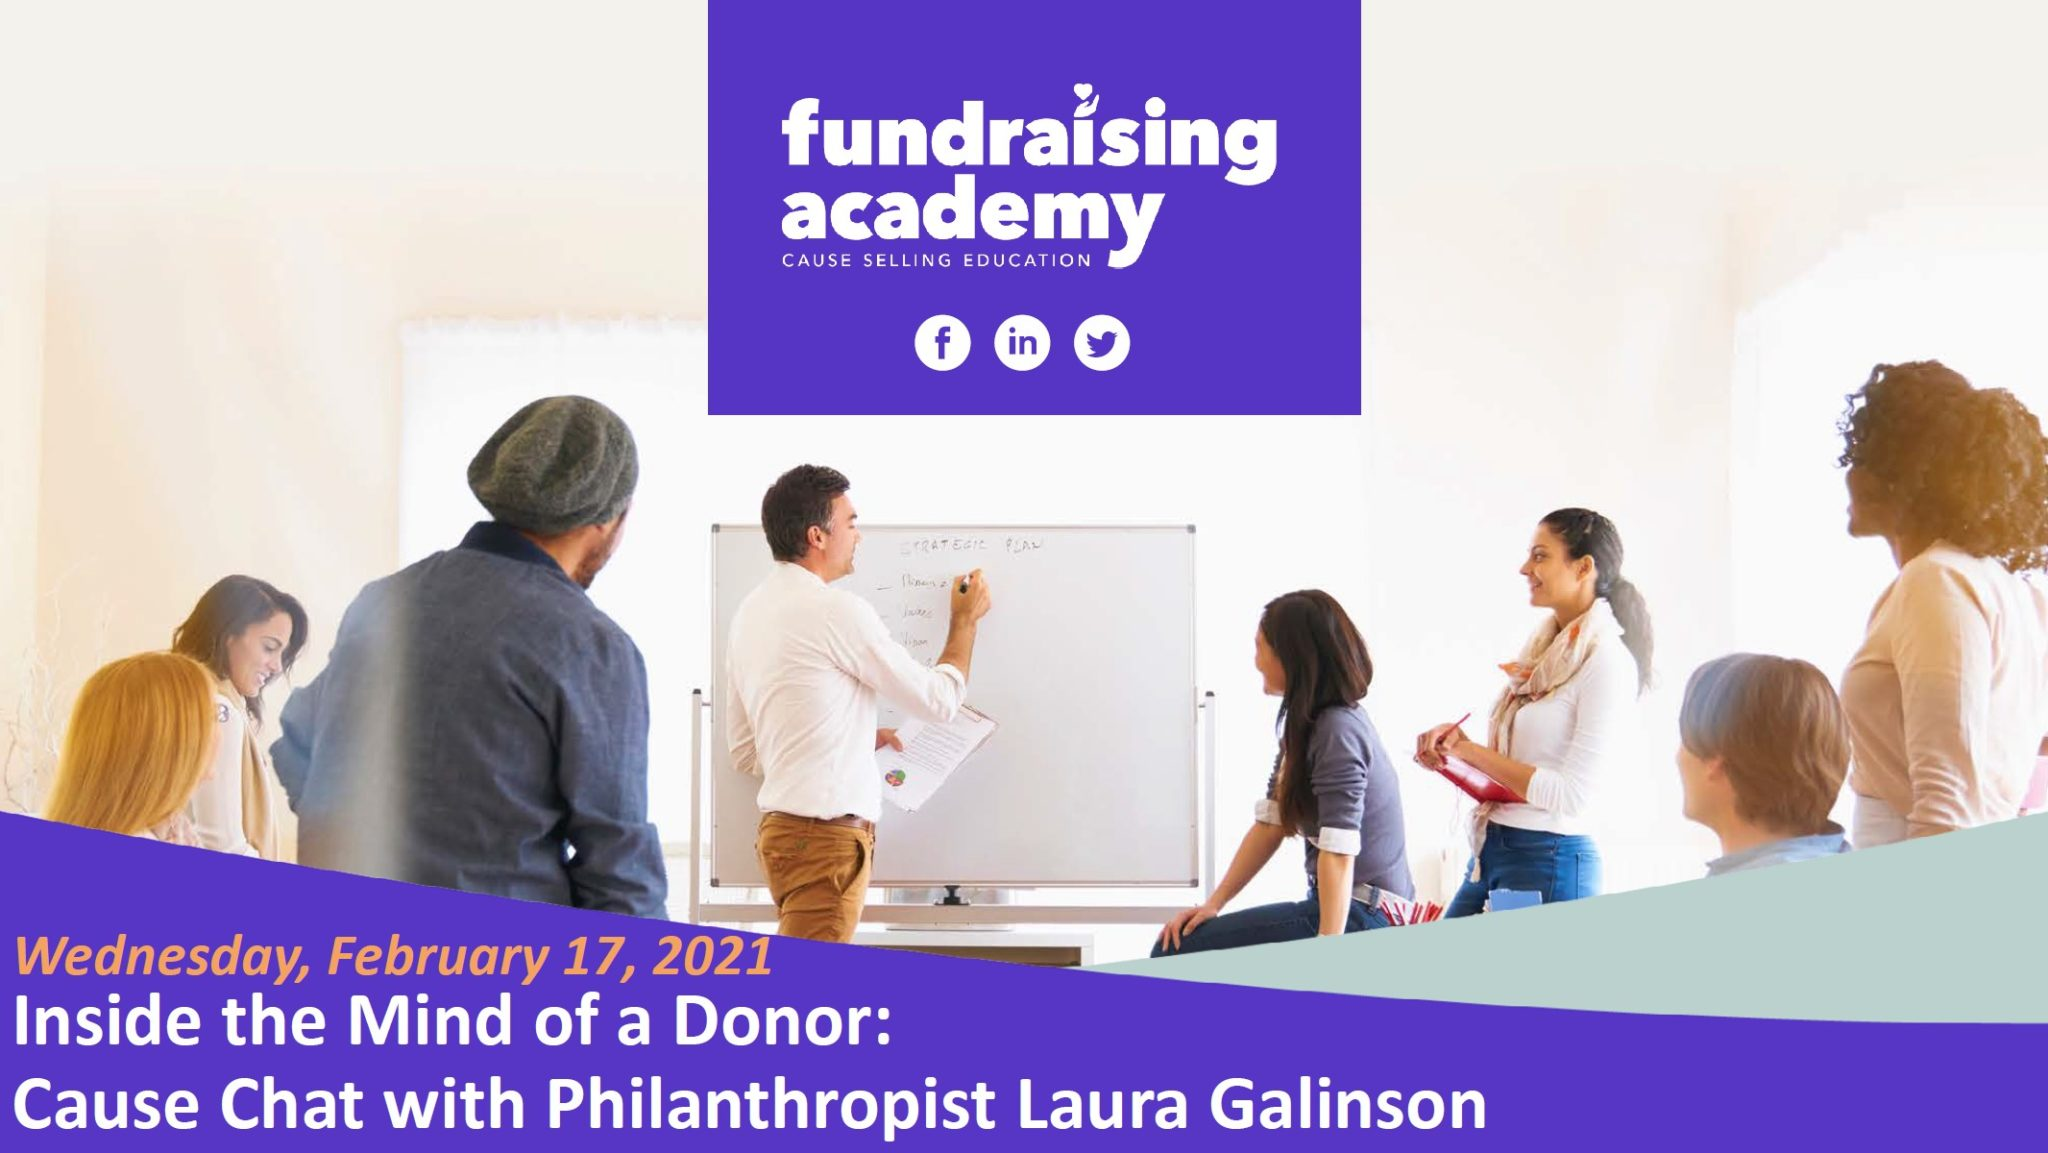 Fundraising Academy: Inside The Mind of a Donor: Cause Chat with Philanthropist Laura Galinson